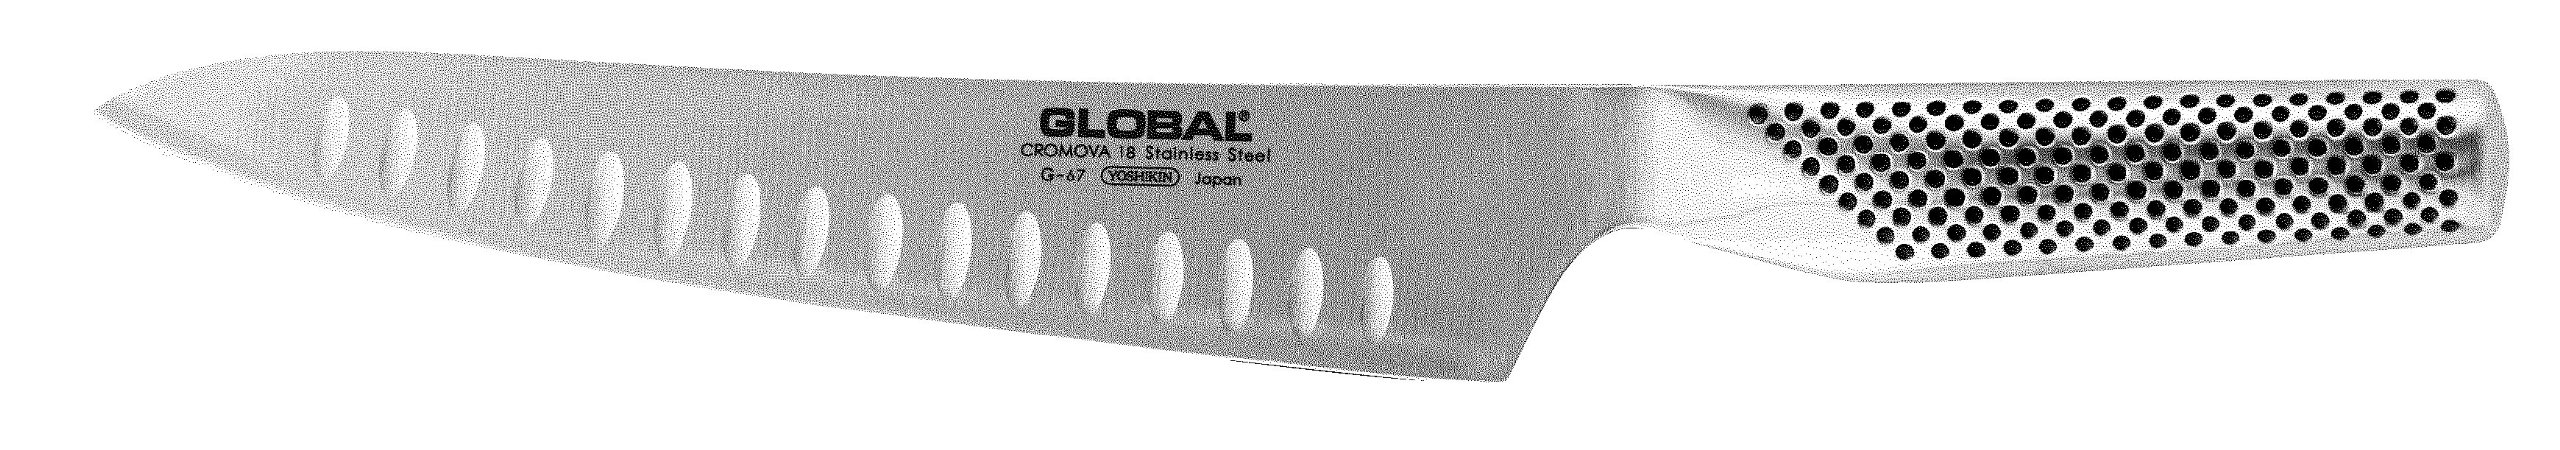 Global G-67 - 8 1/4 inch, 21cm Carving Hollow Ground Knife